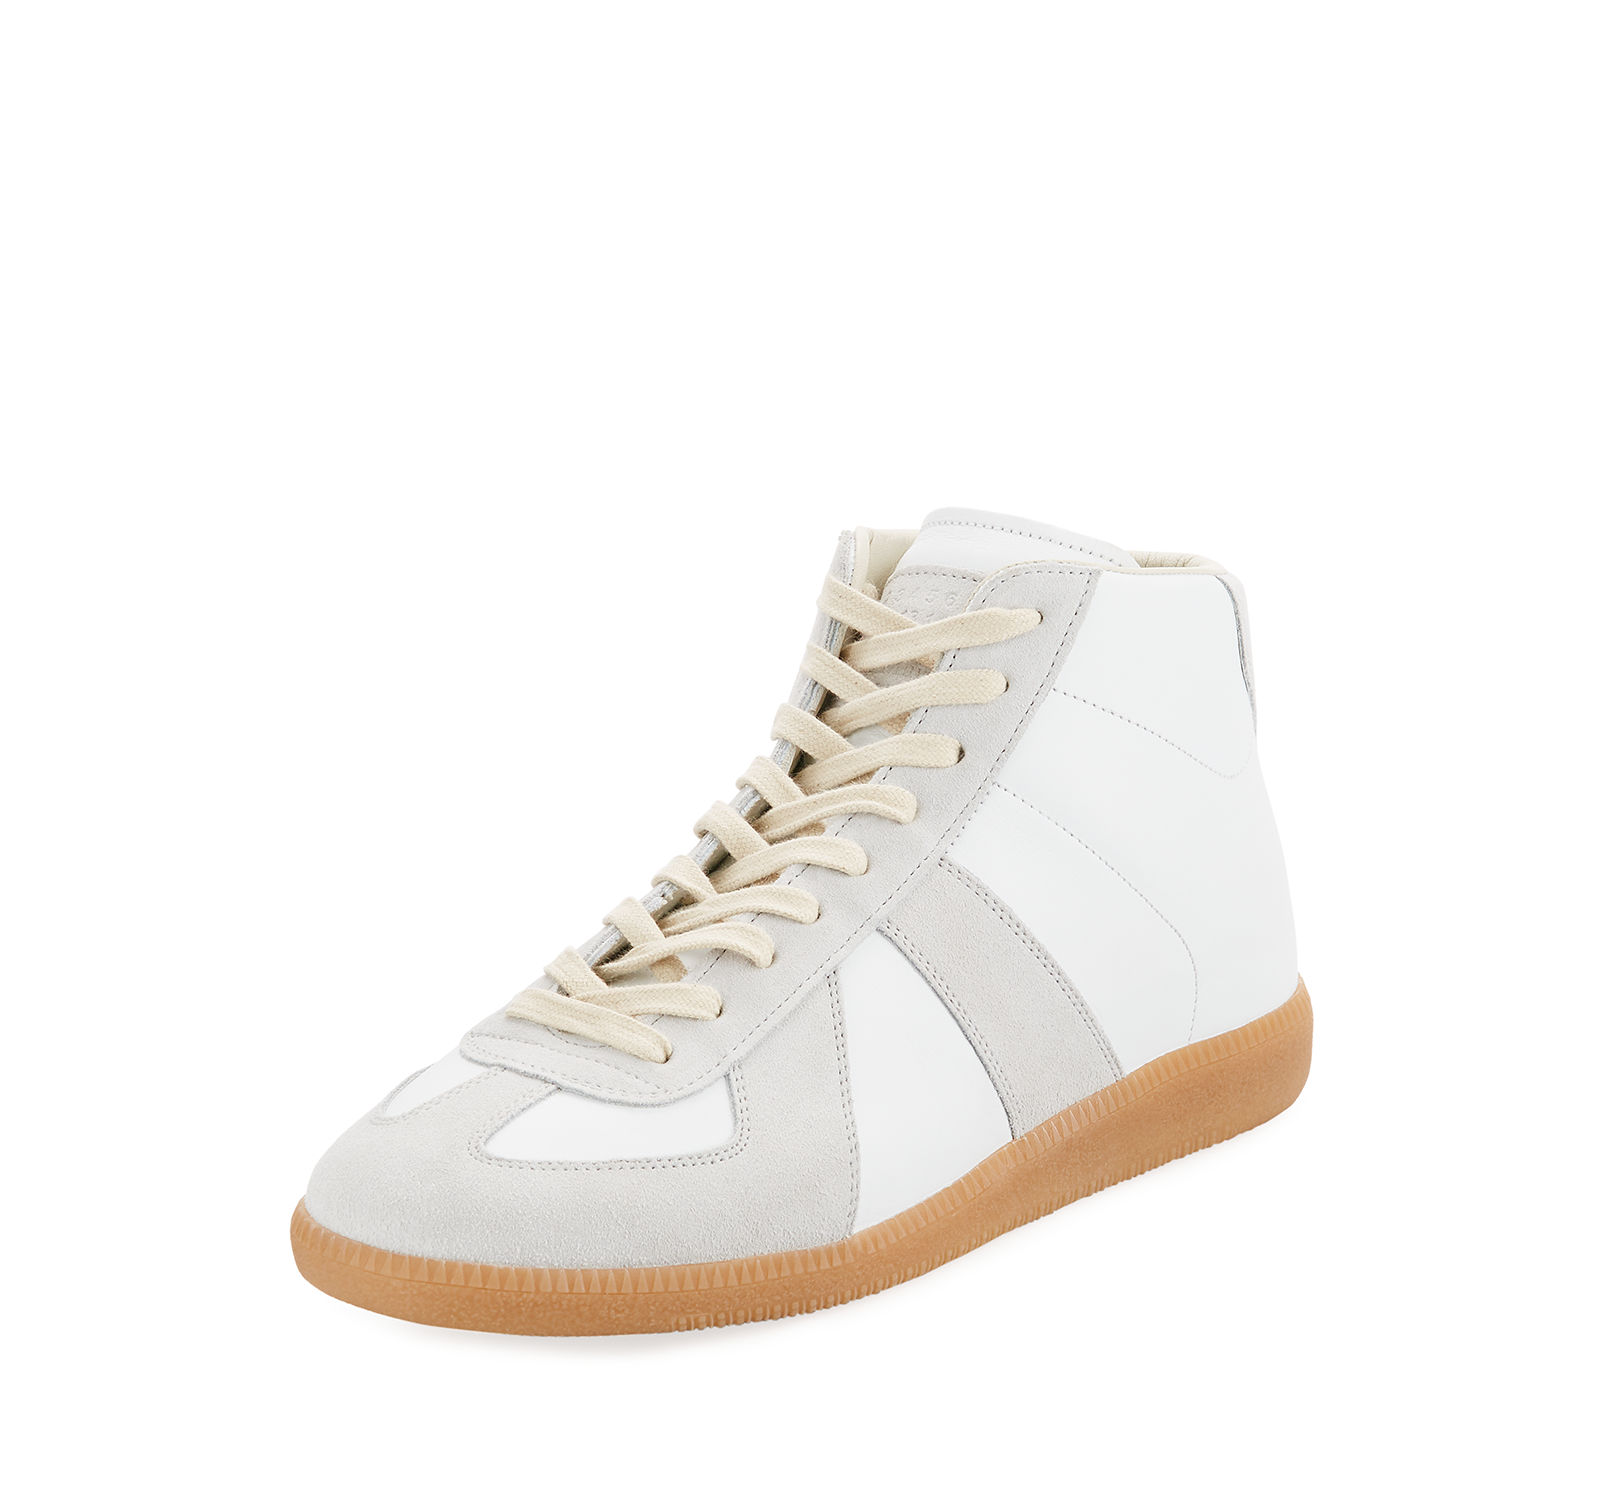 Maison Margiela Men's & Replica Mid-Top Leather & Men's Suede Sneakers b010da